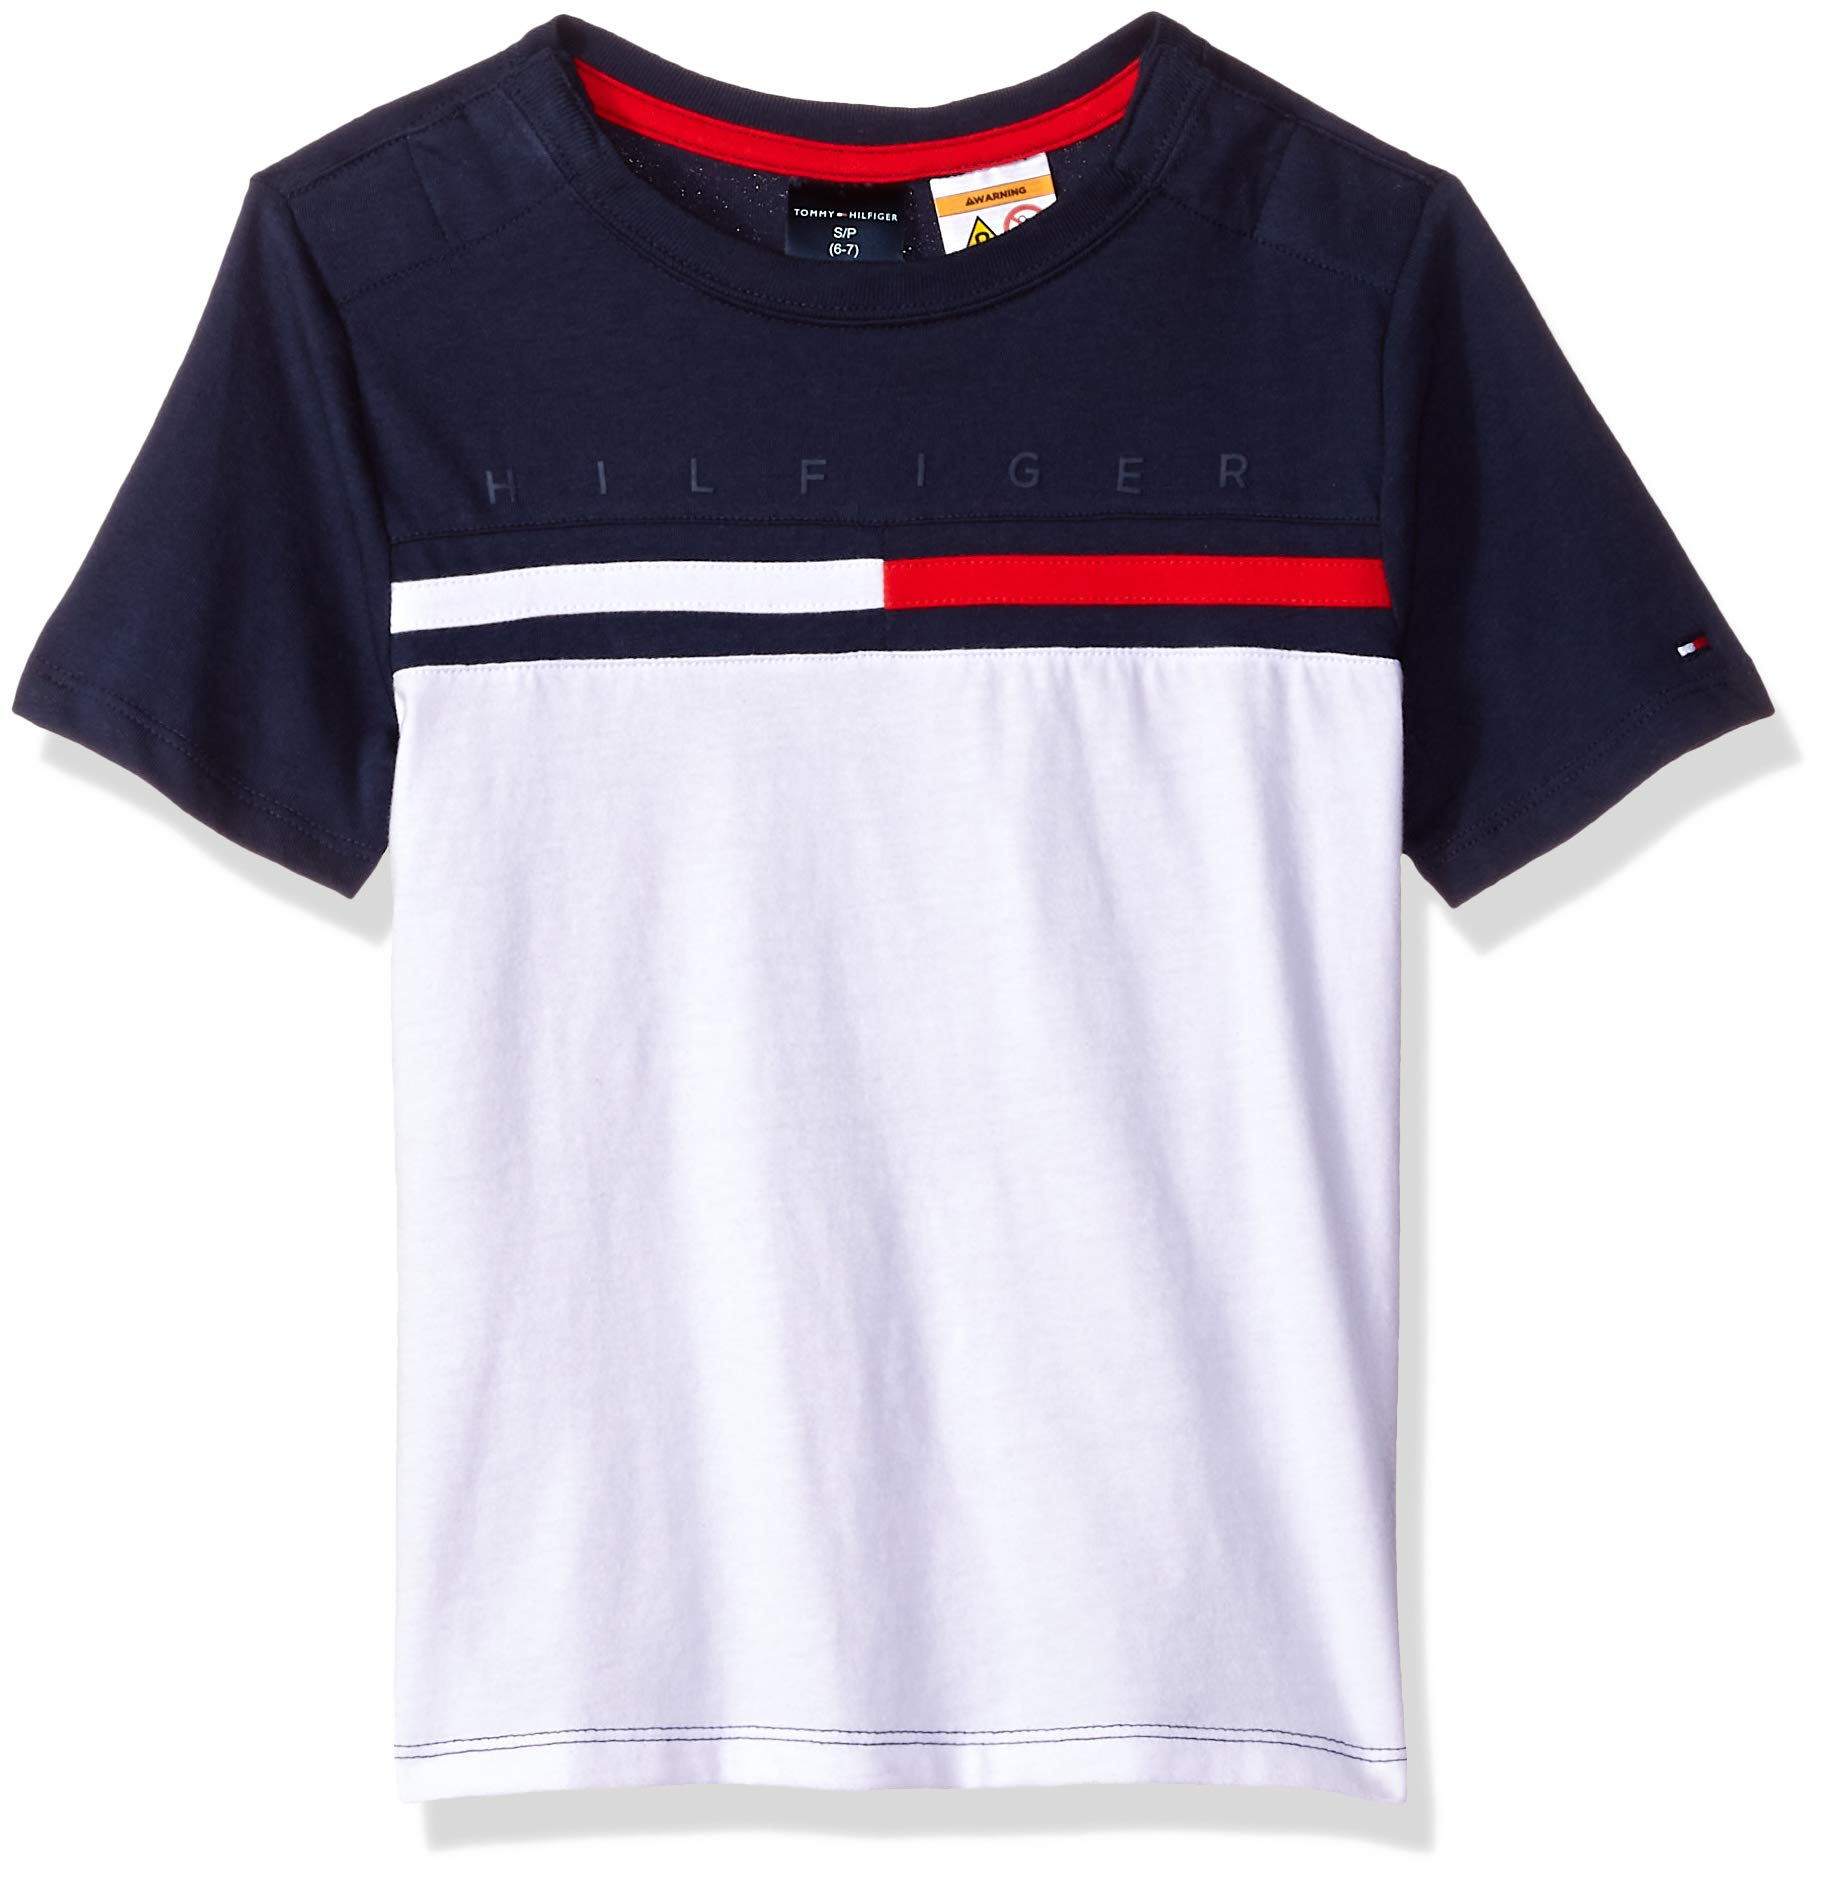 Tommy Hilfiger Boys' Adaptive T Shirt with Velcro Brand Closure at Shoulders